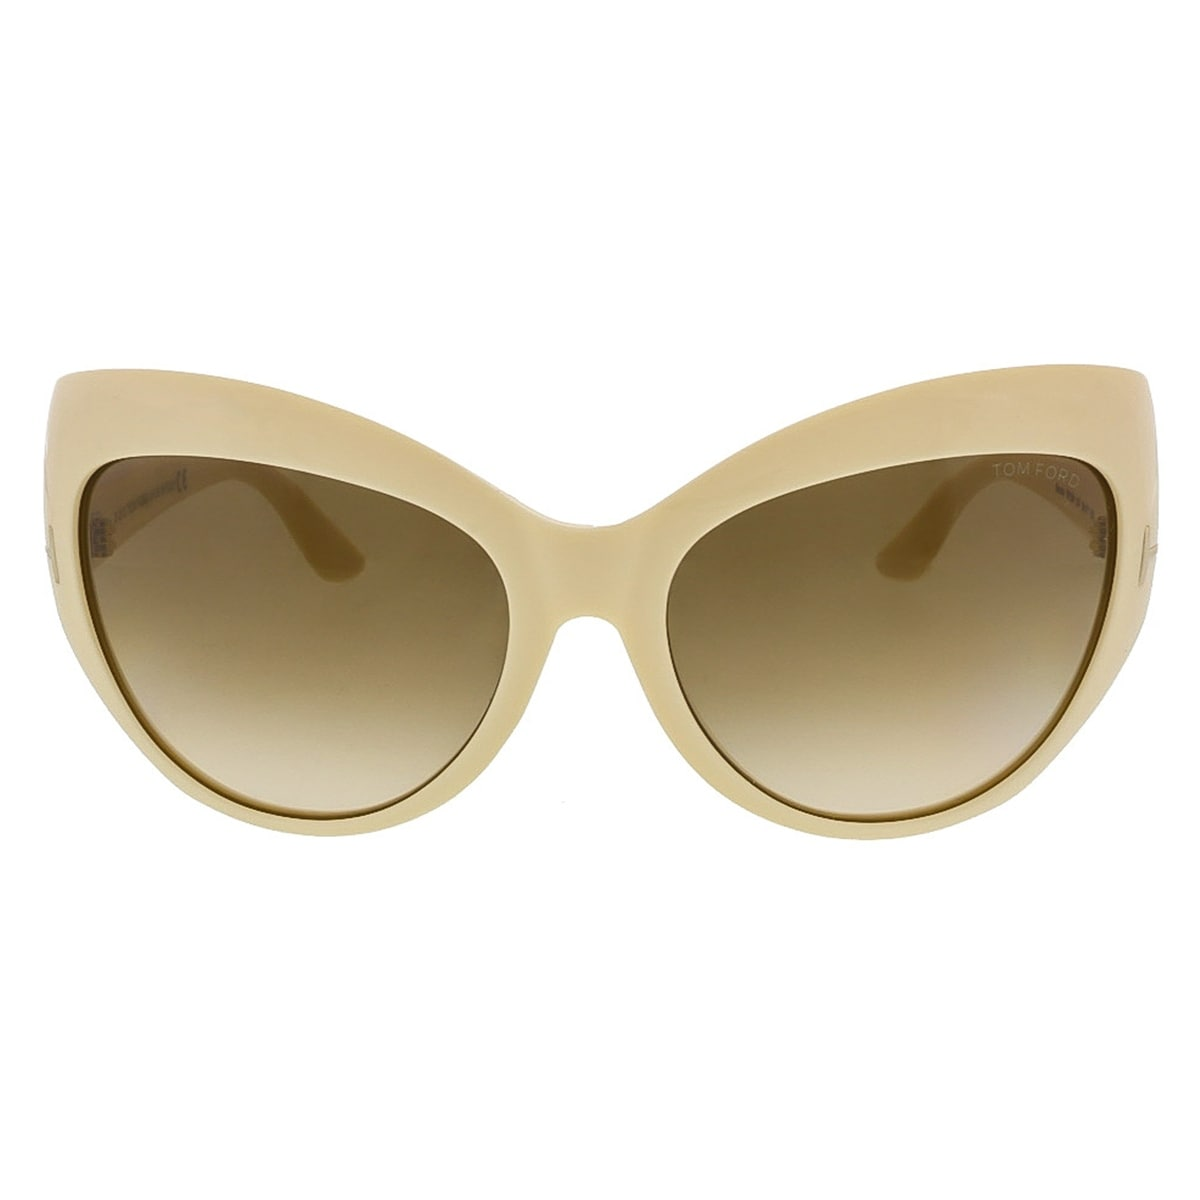 a4e7212fea Shop Tom Ford FT284 S 25F Bardot Ivory Full Rim Cateye Sunglasses -  59-17-130 - Free Shipping Today - Overstock - 13241585